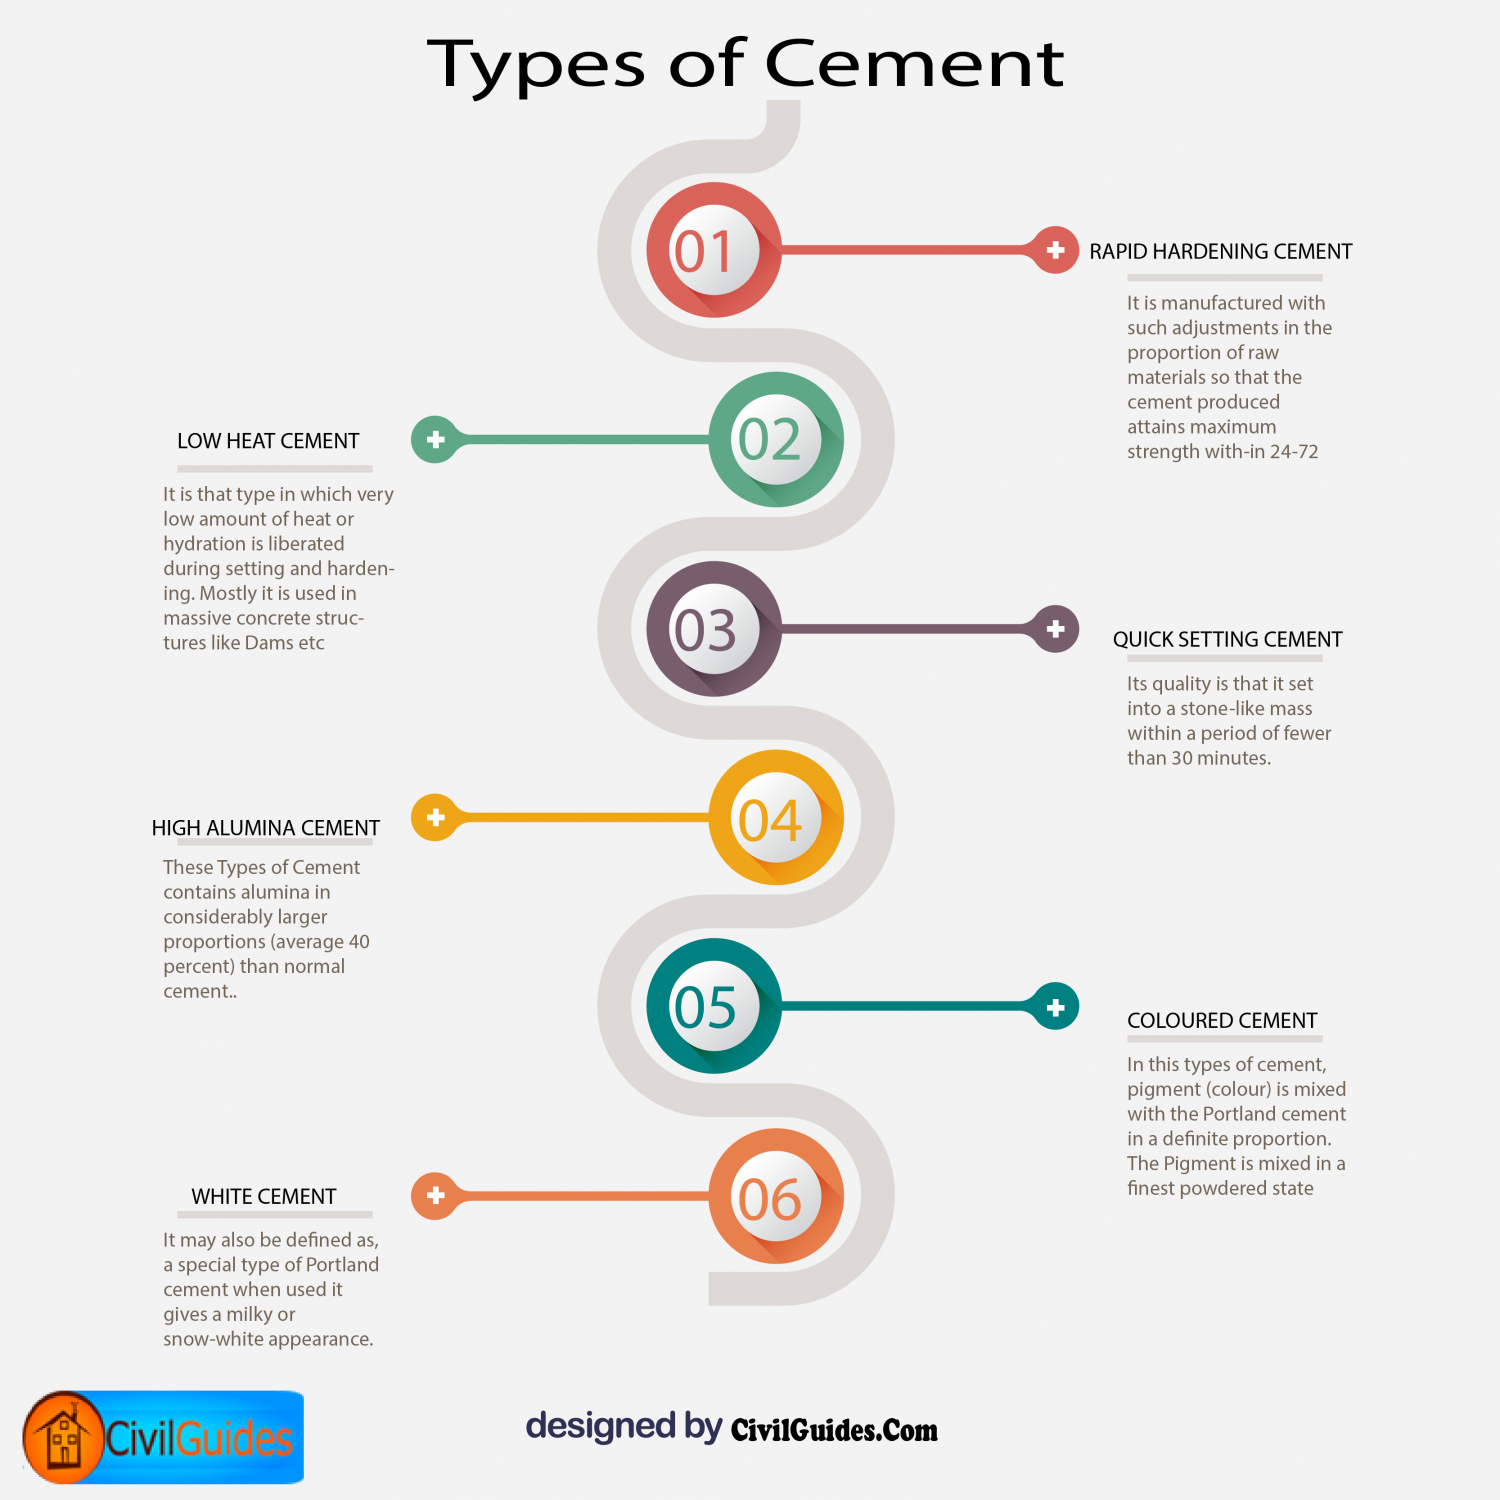 Types of Cement Infographic